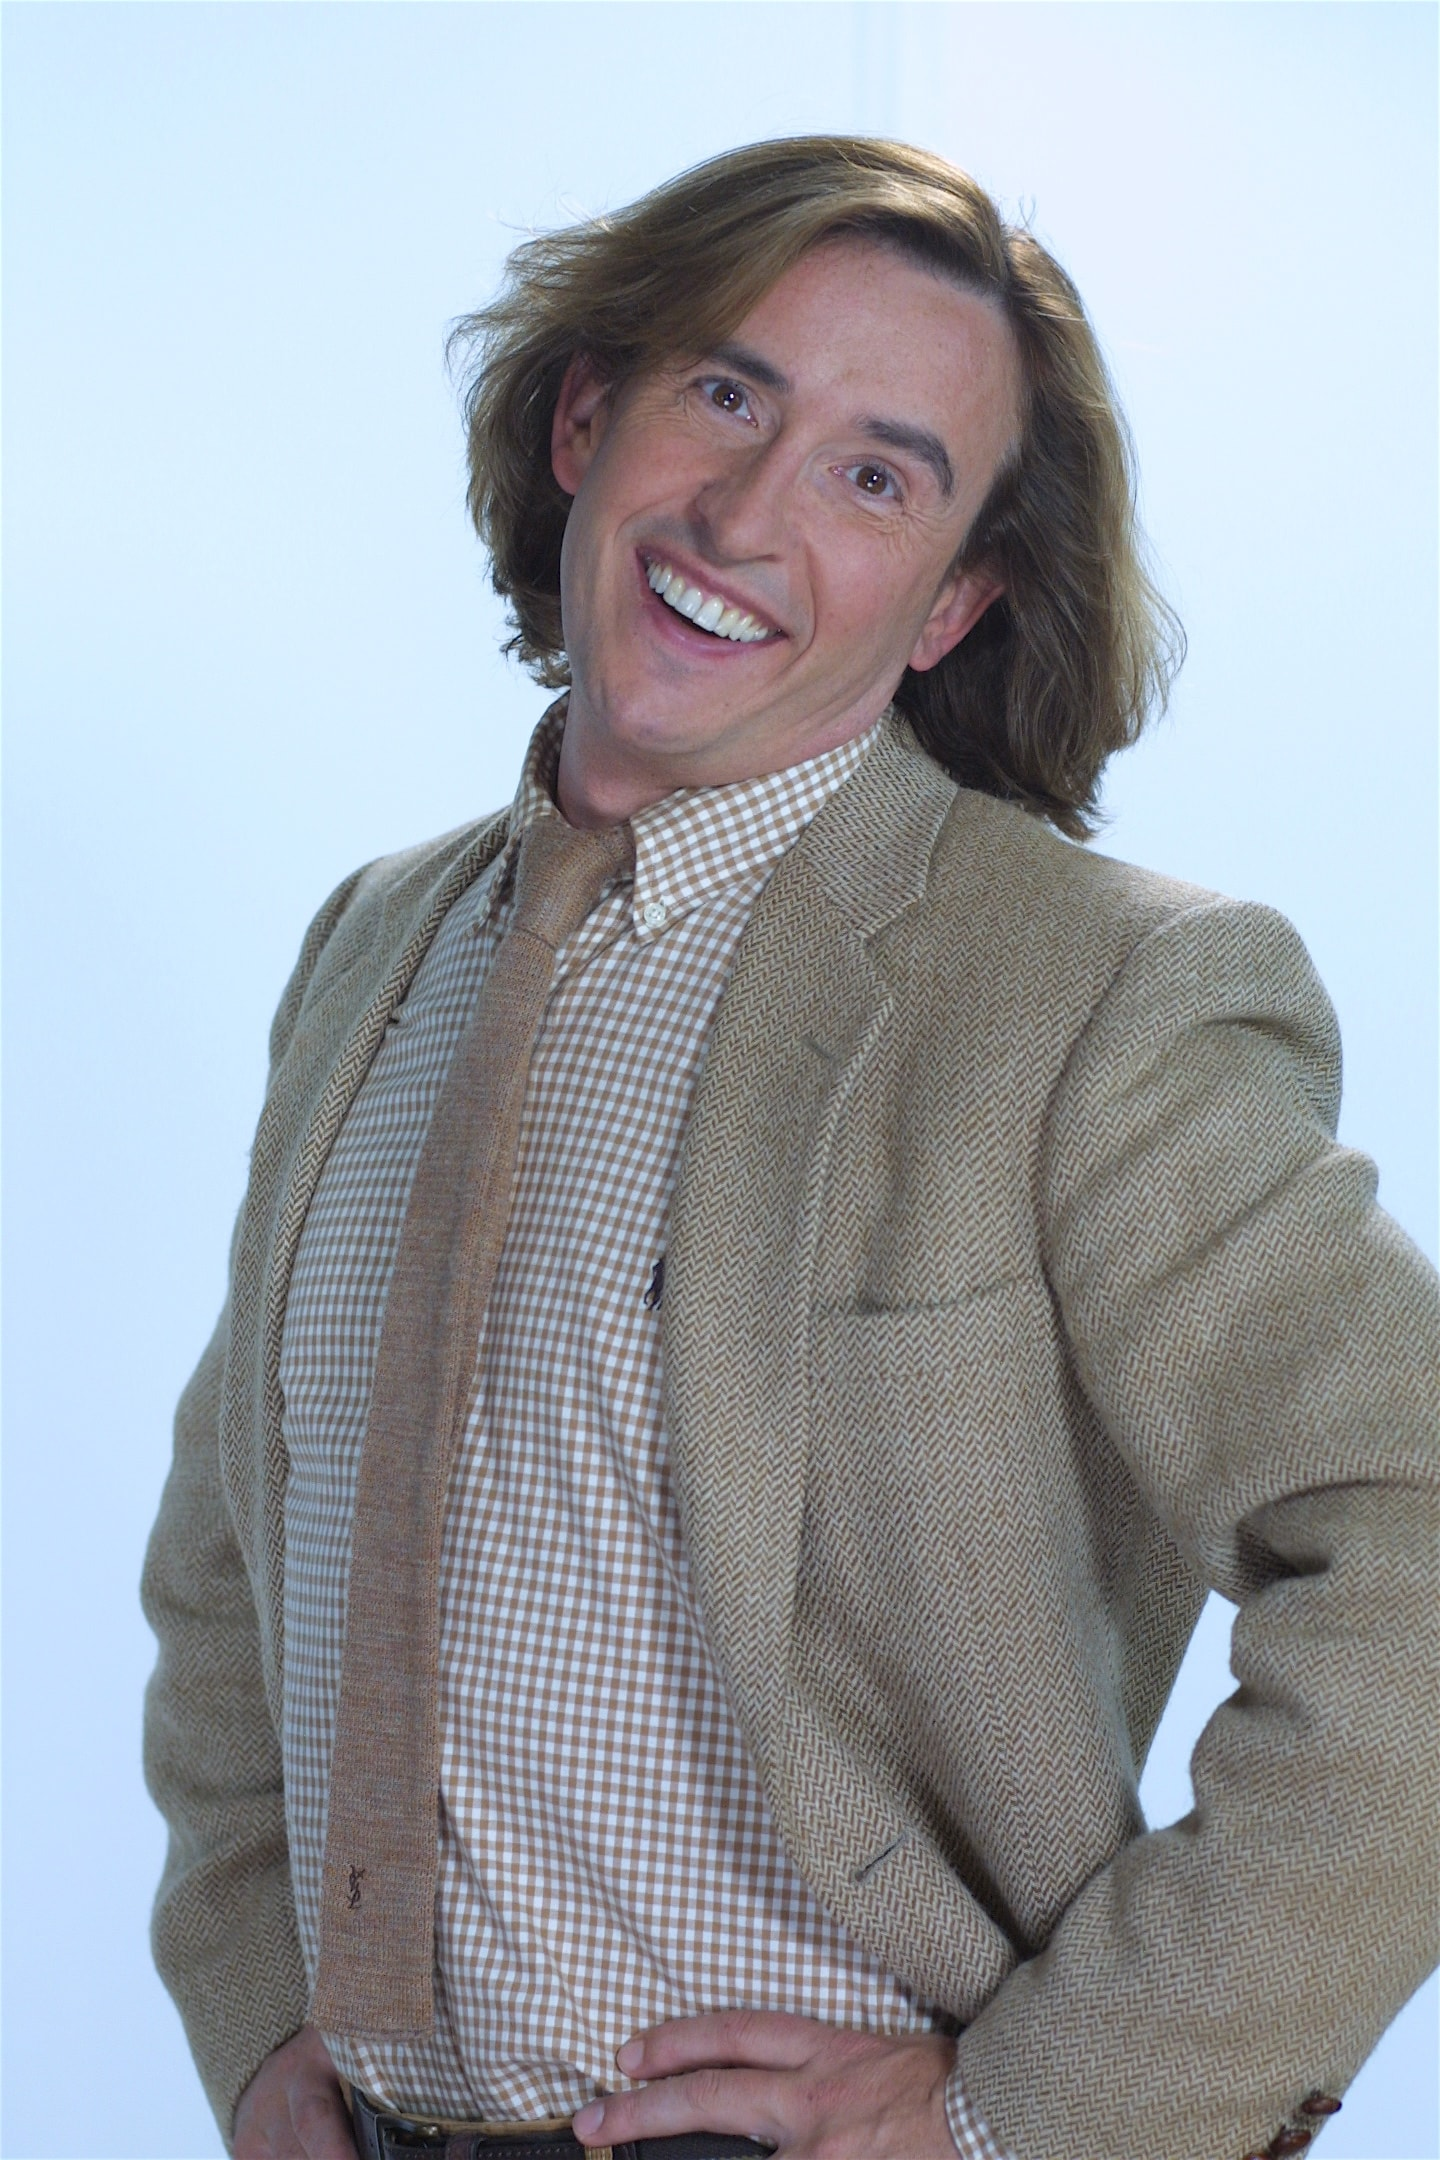 Steve Coogan For mobile